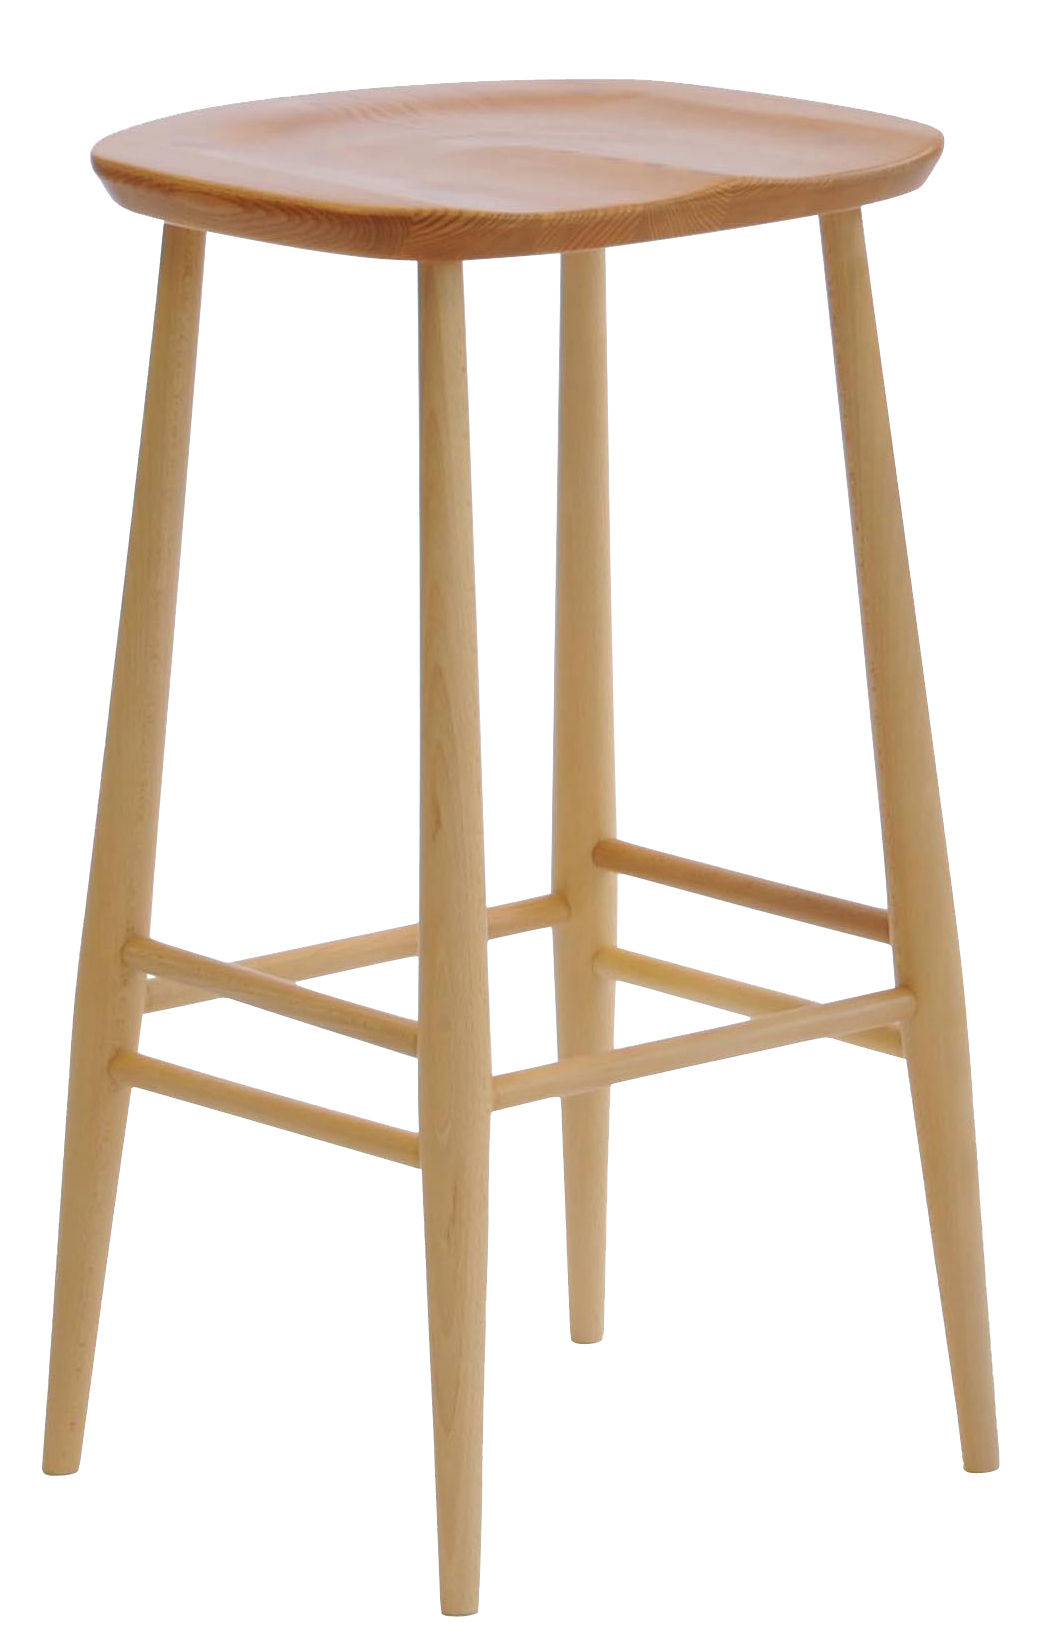 Bar Stool Bar Stool Wood H 65 Cm Reissue 1950 Natural